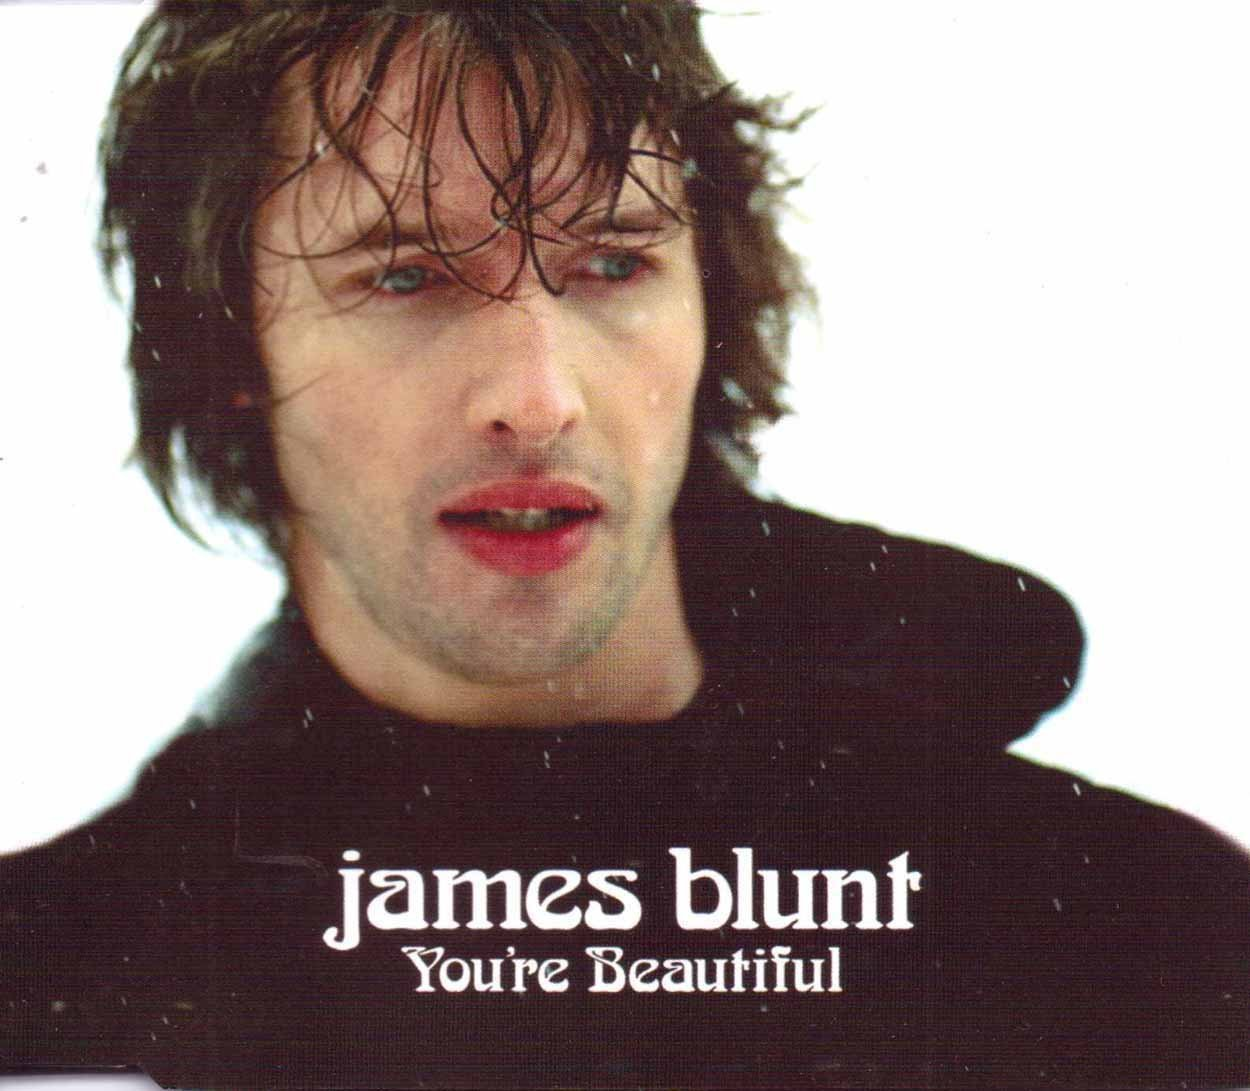 article and jamesblunt image